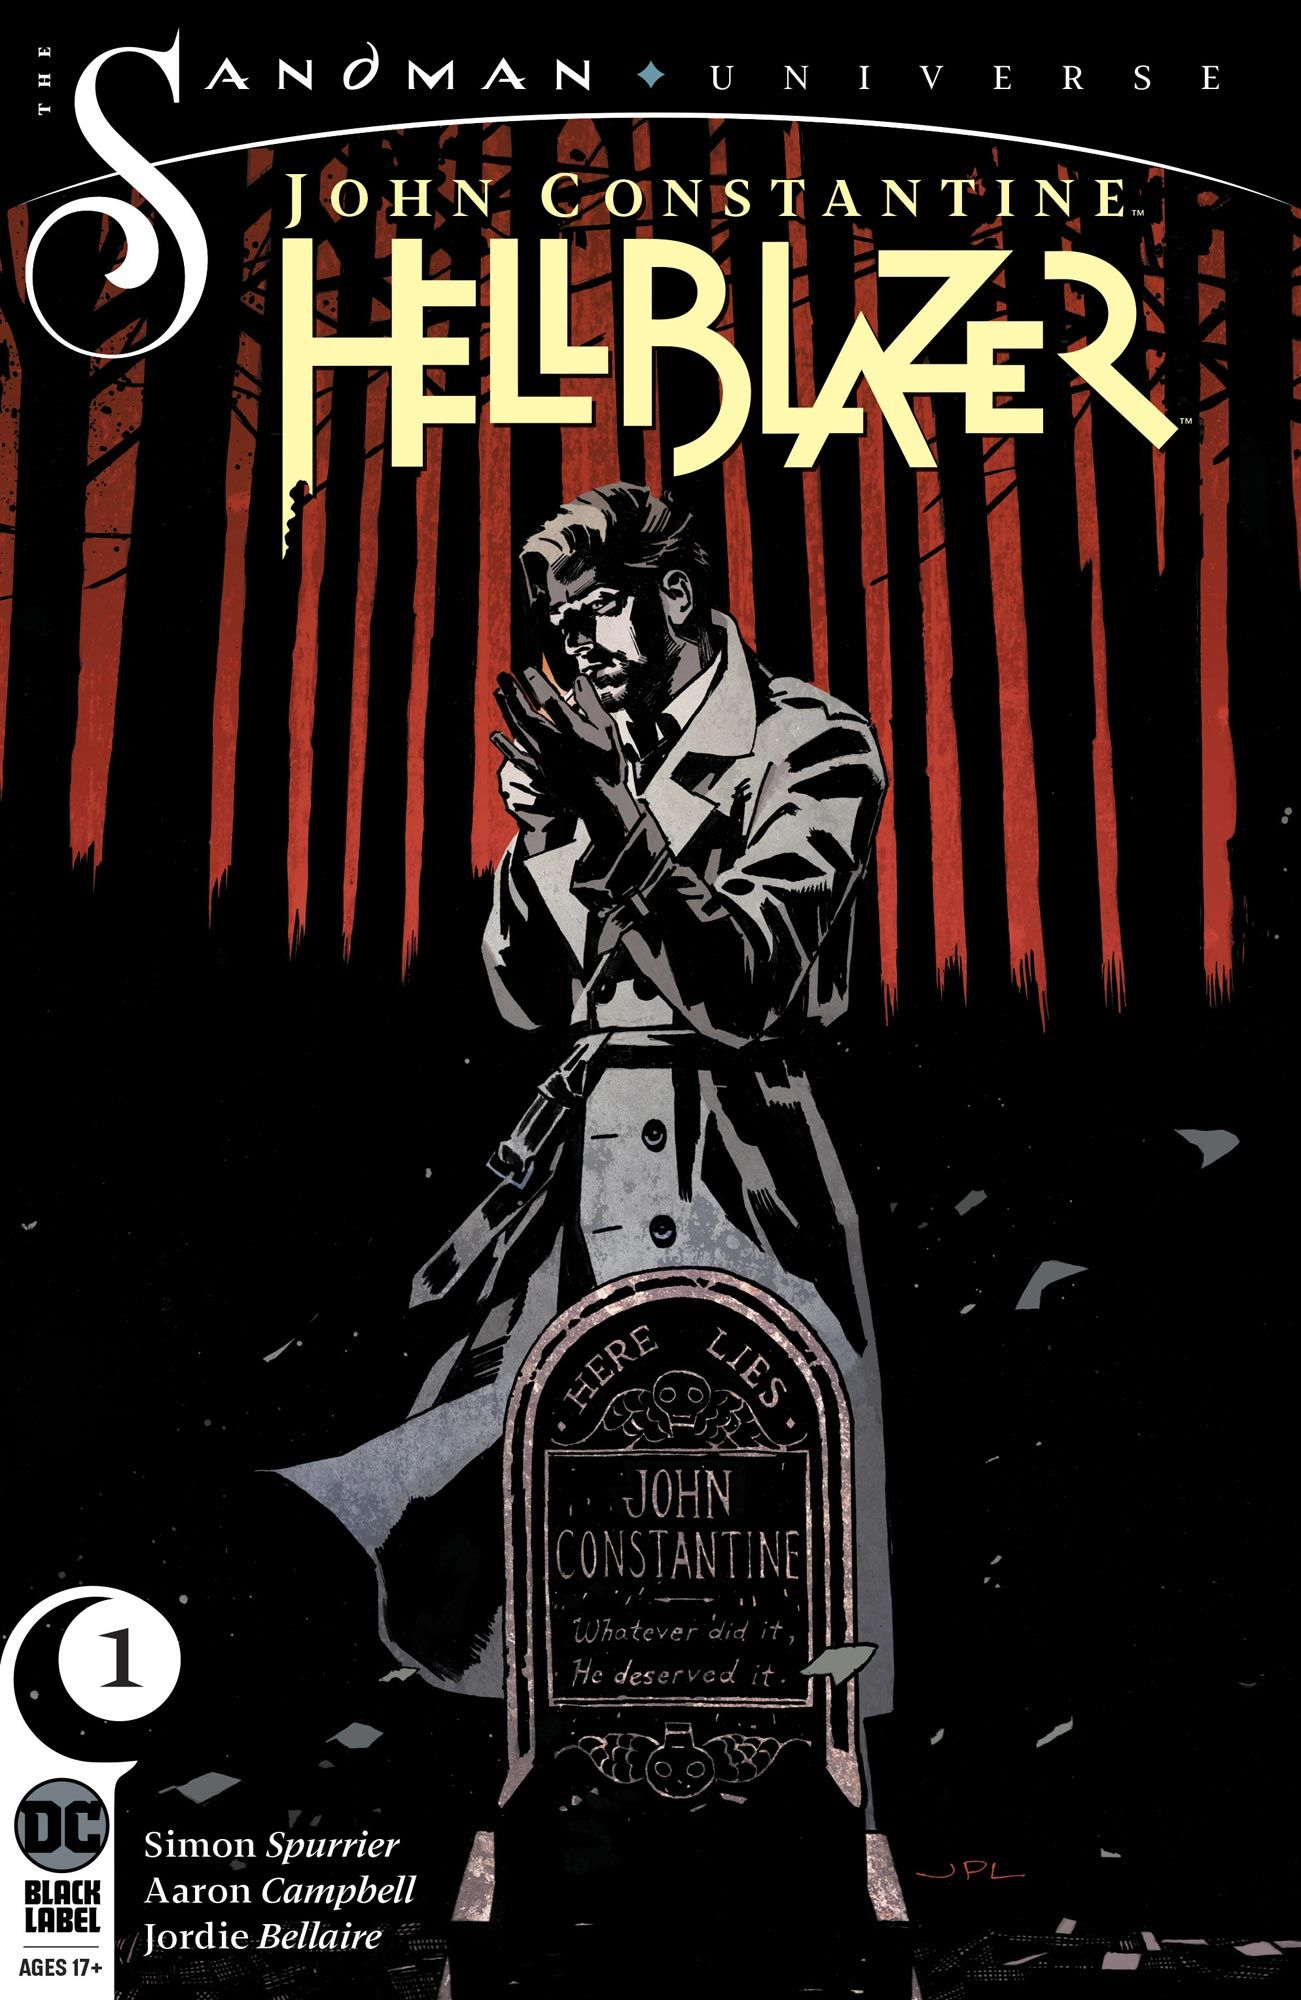 REVIEW: John Constantine: Hellblazer Is a Return to Form For DC's Occult Detective